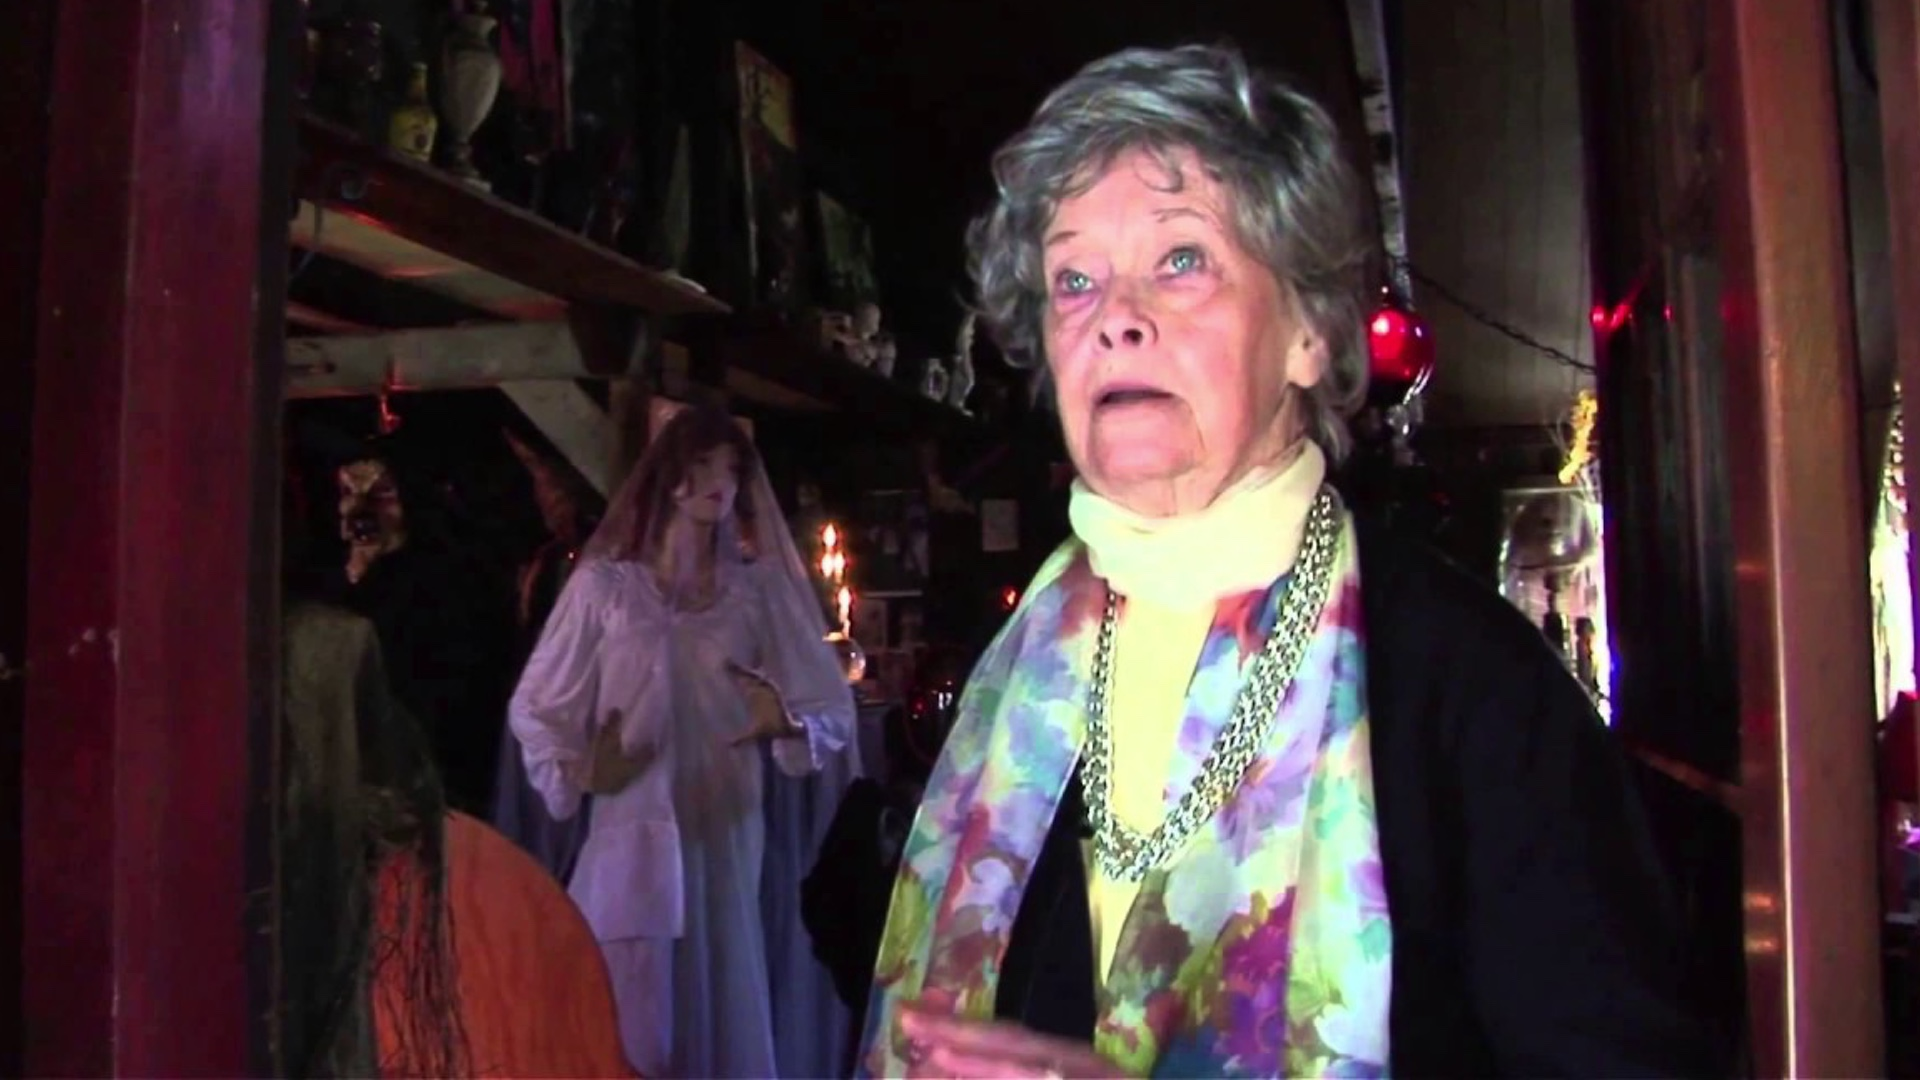 famed-paranormal-investigator-and-inspiration-for-the-conjuring-franchise-lorraine-warren-has-passed-away-at-92-social.jpg